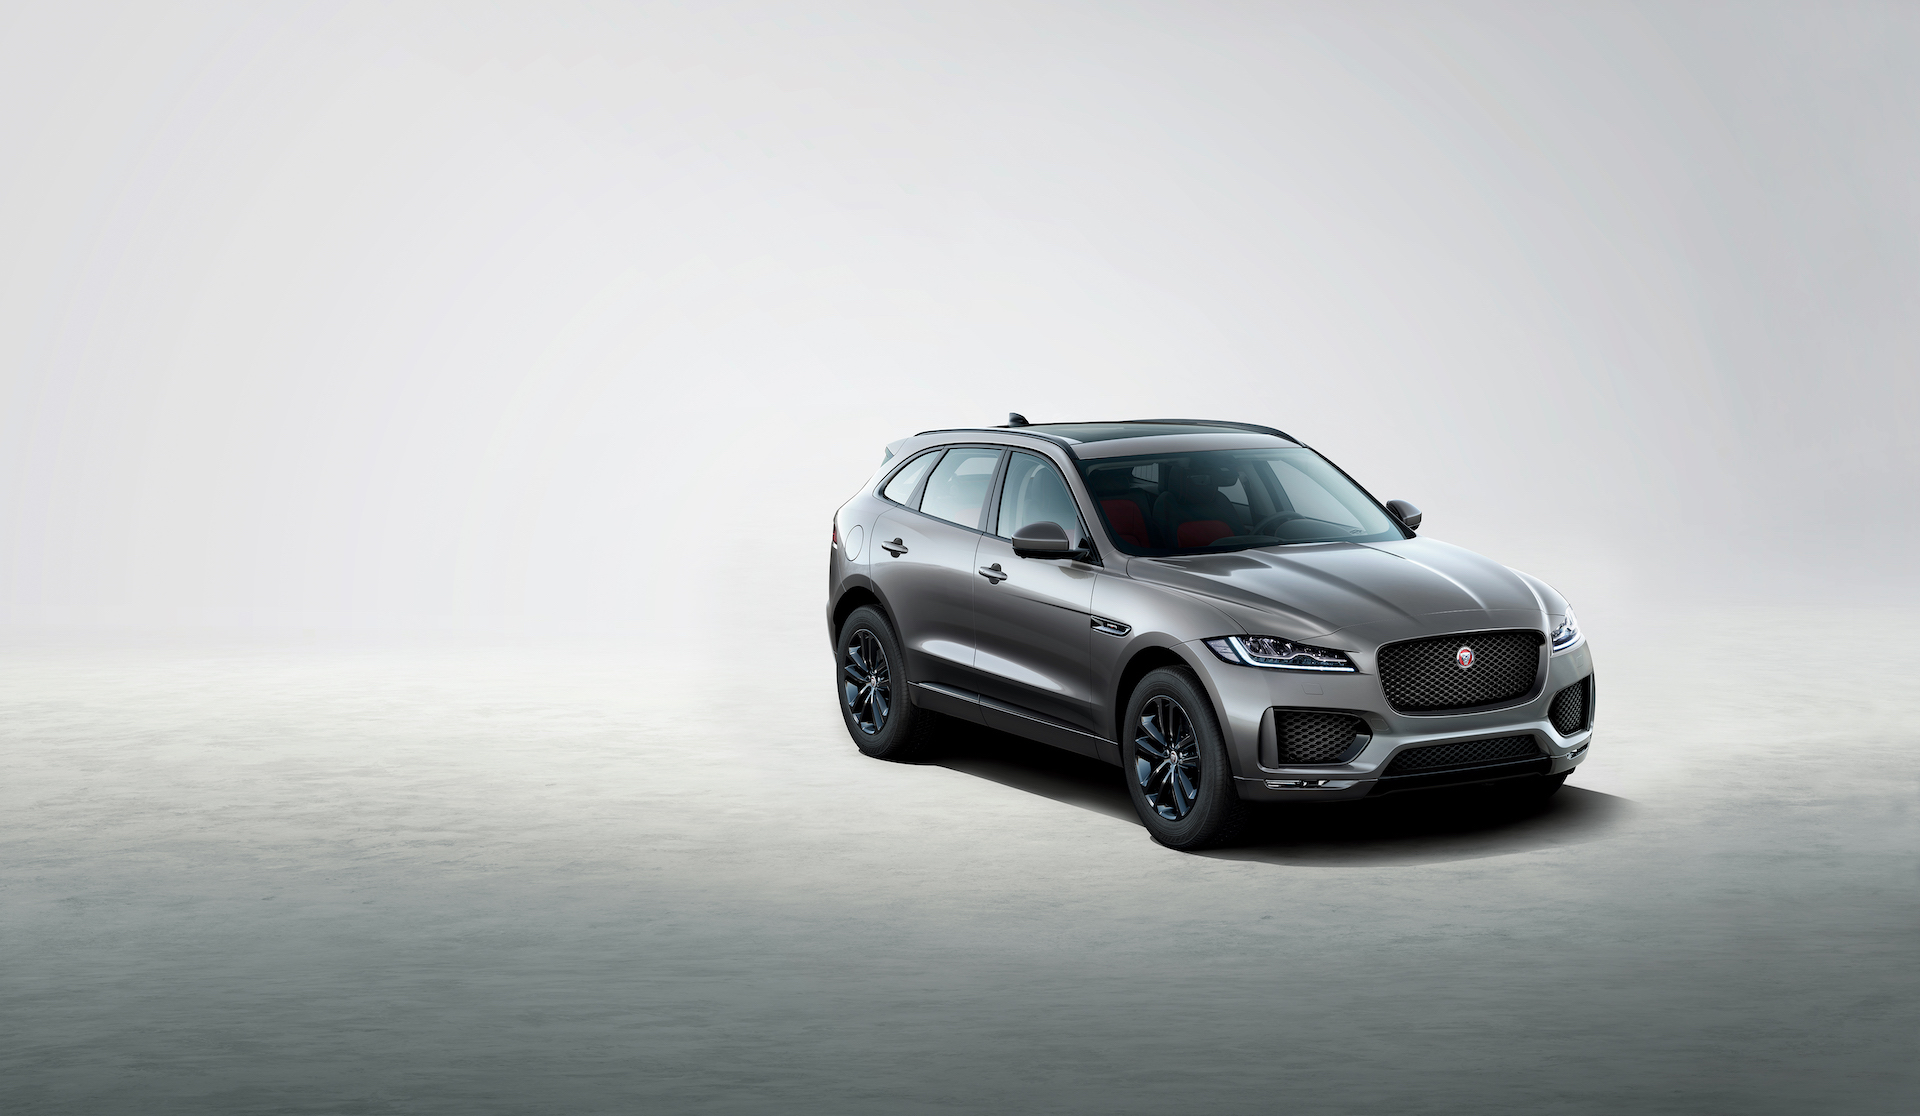 New And Used Jaguar F Pace Prices Photos Reviews Specs The Car Connection